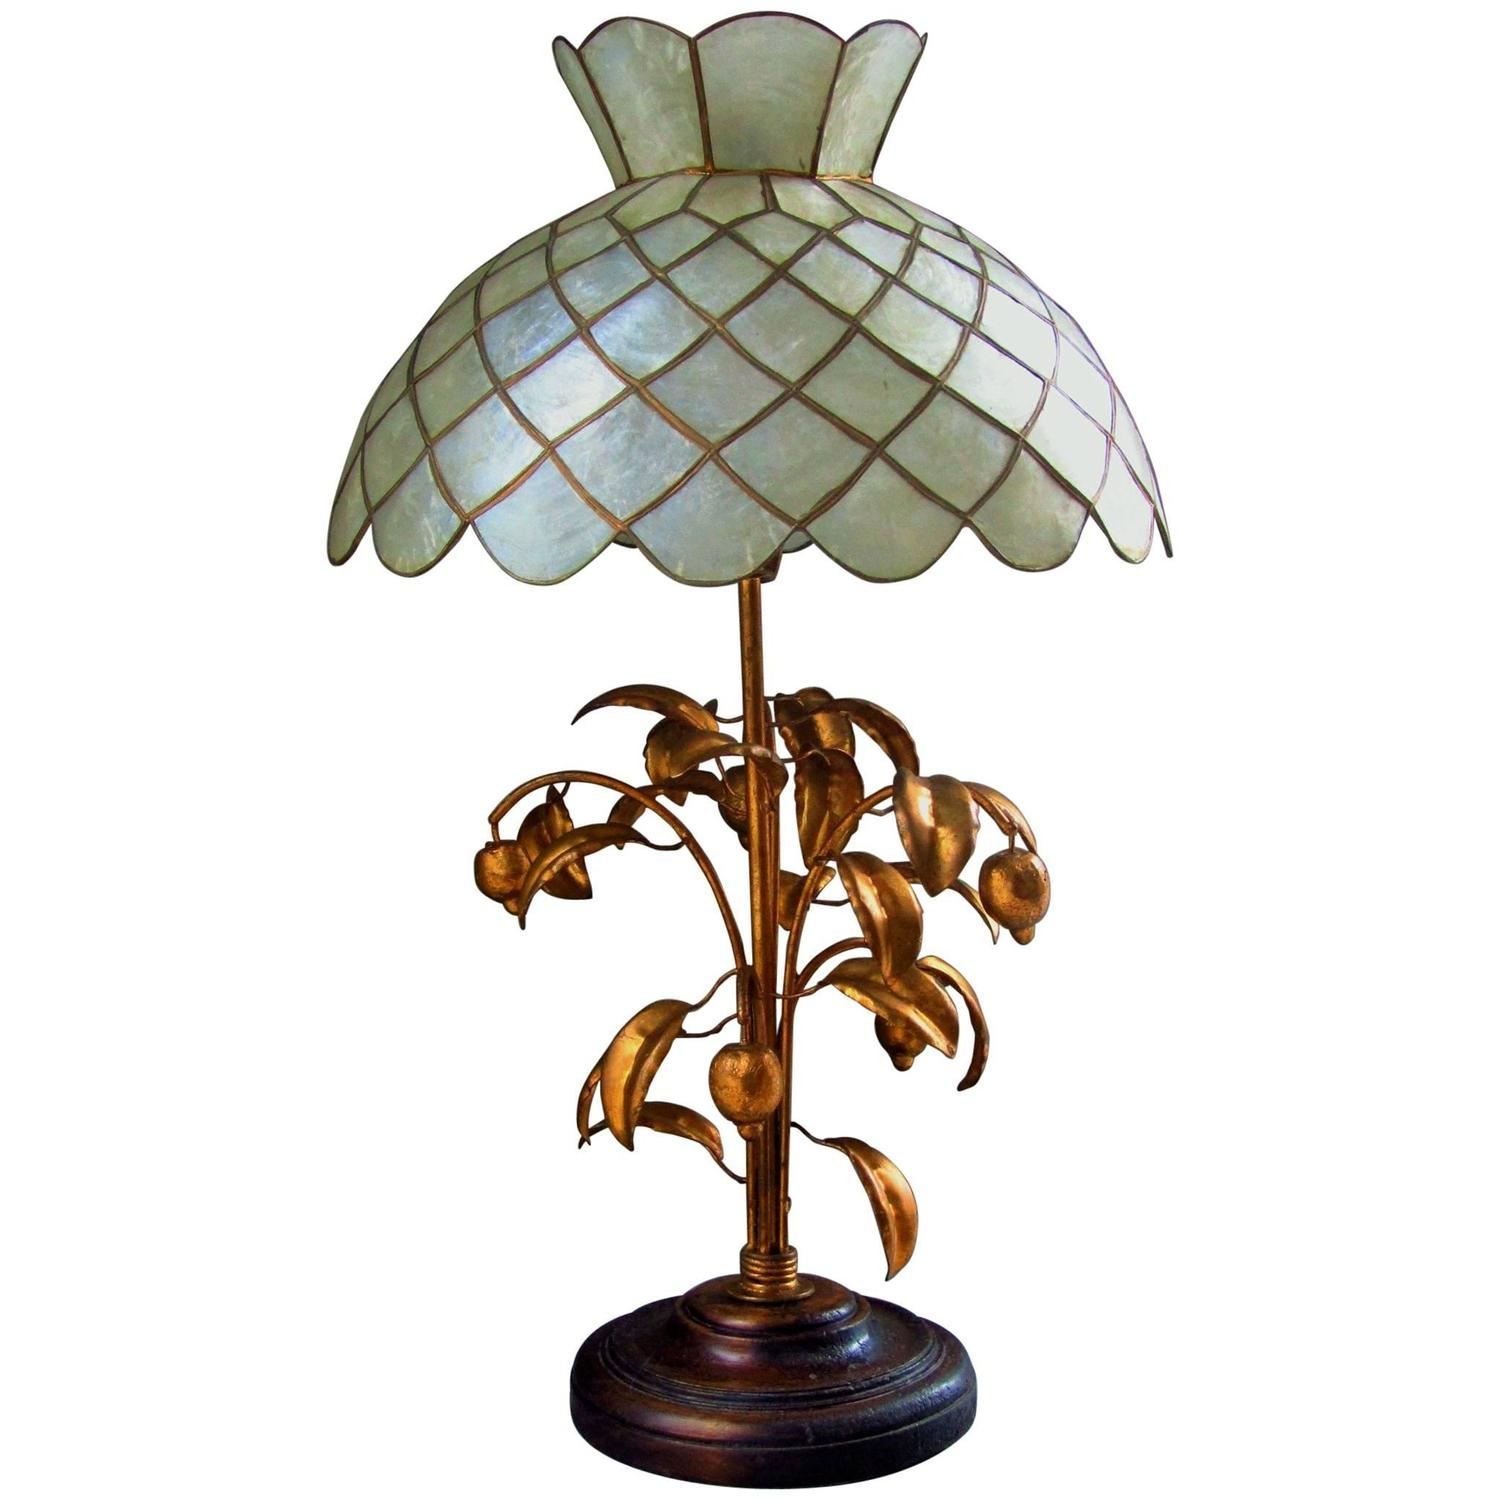 art deco table desk lamp mother of pearl 1940 for sale at. Black Bedroom Furniture Sets. Home Design Ideas